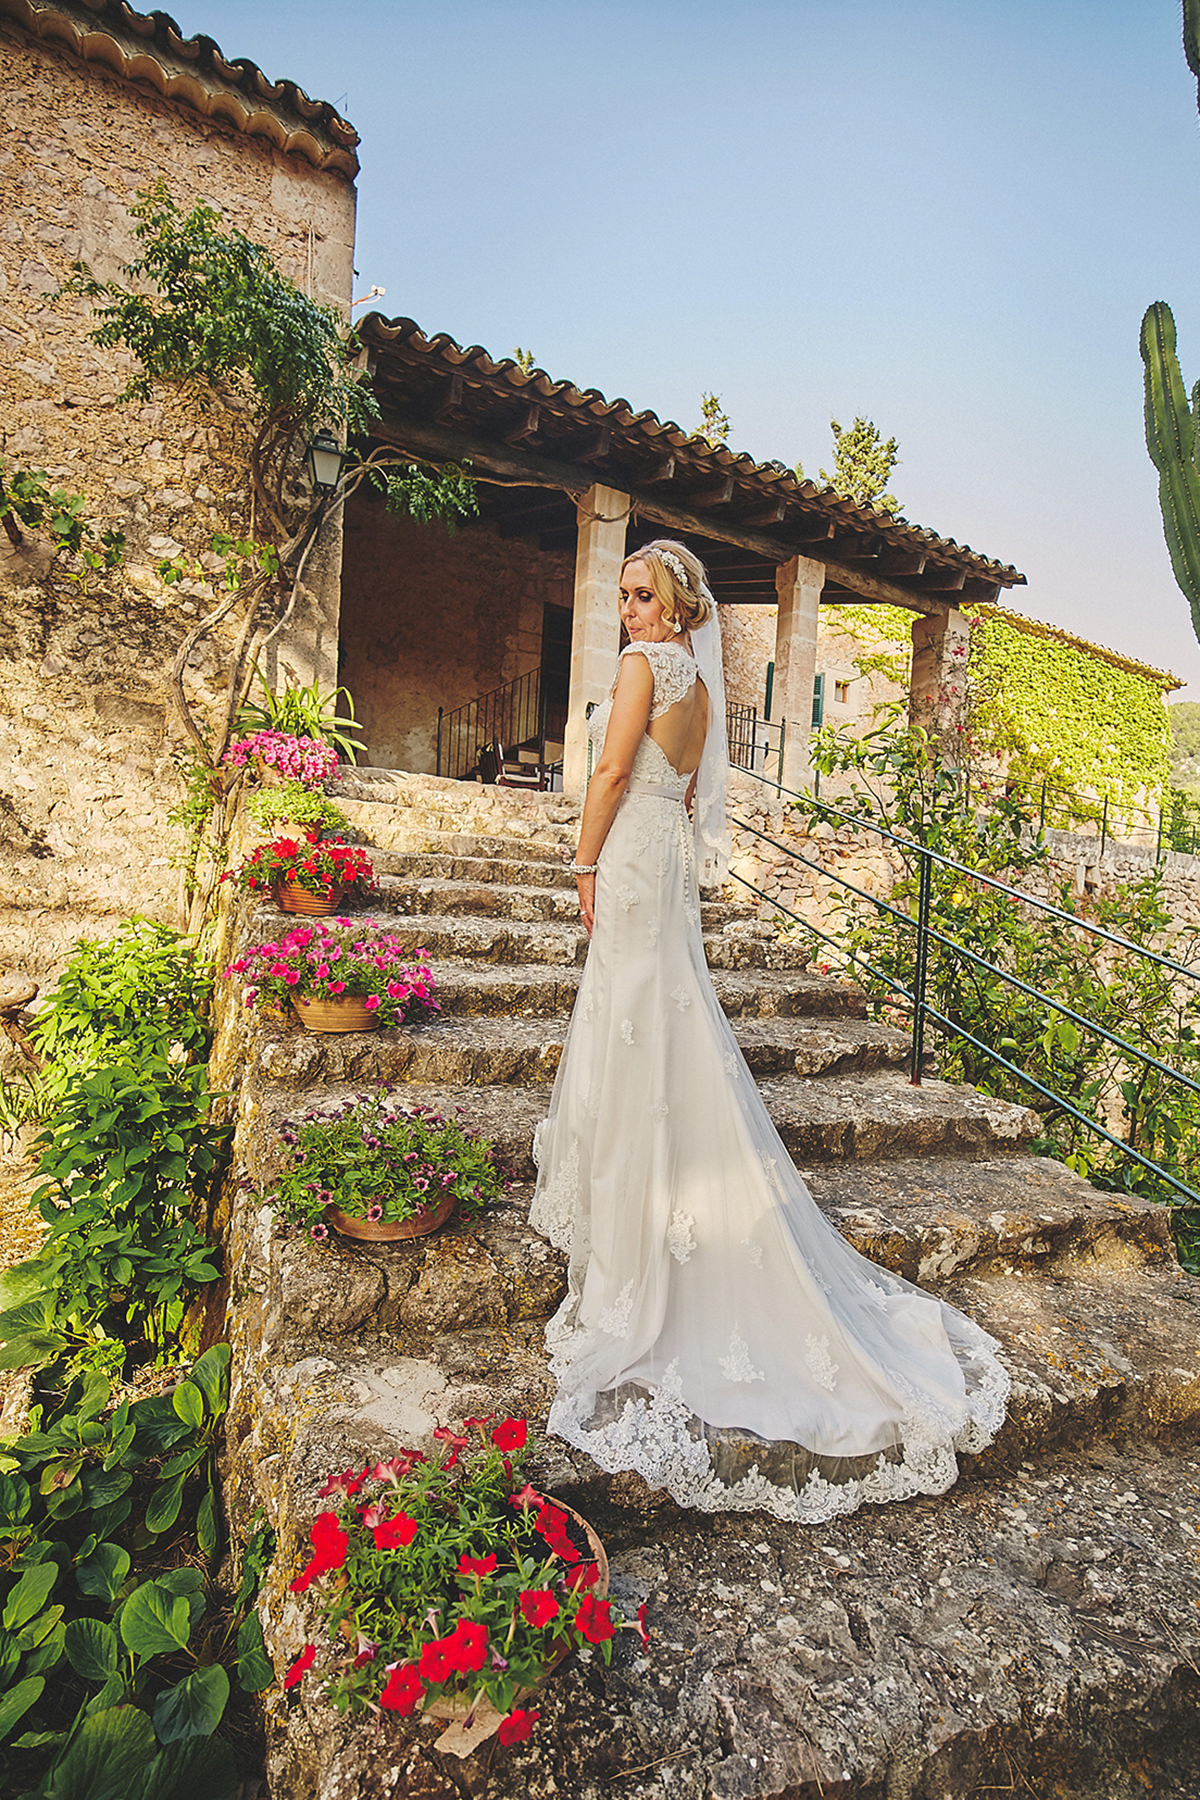 276 - Destination wedding in a magical Mallorca